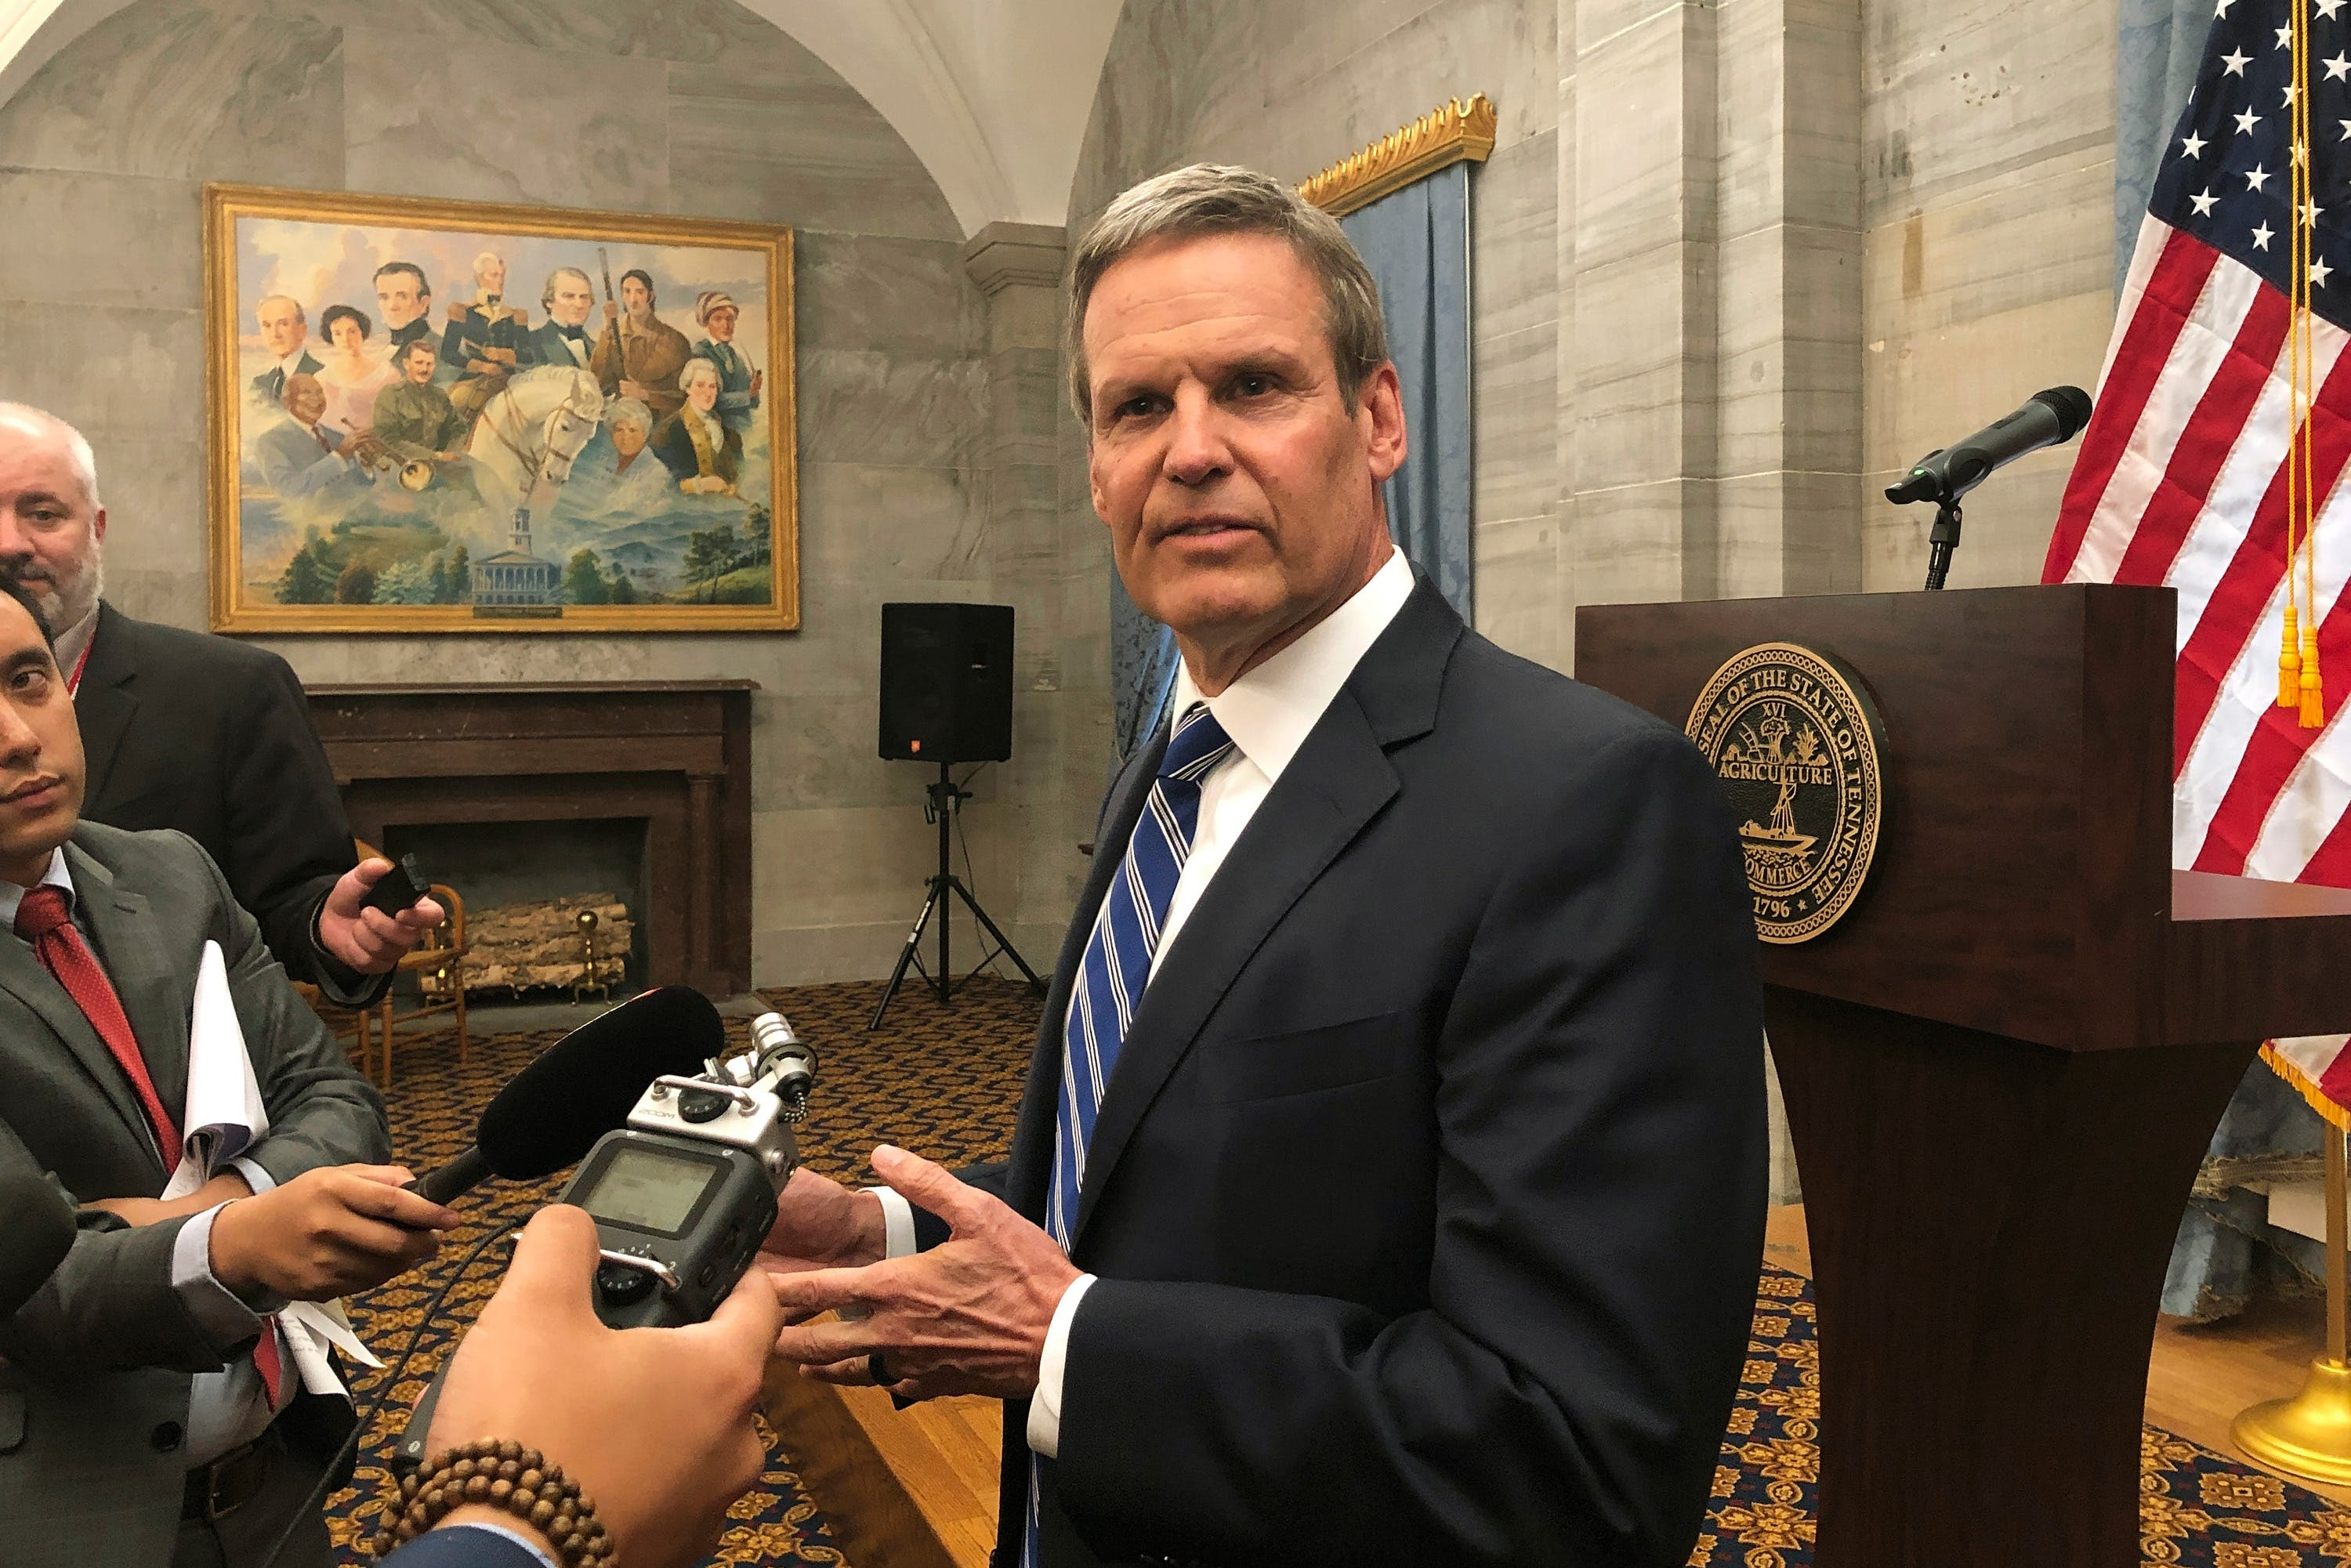 FILE - In this April 25, 2019 file photo, Republican Tennessee Gov. Bill Lee talks to reporters at the Capitol in Nashville, Tenn. More than half of Lee's newly appointed cabinet members, including his education czar and Tennessee's Medicaid chief, didn't submit applications or provide any documents outlining why they deserved the jobs he gave them. The Associated Press reviewed all applications submitted to Lee's office during his transition into the top statewide position.  This included submissions for both cabinet spots and lower level jobs inside the executive branch. (AP Photo/Kimberlee Kruesi, File)